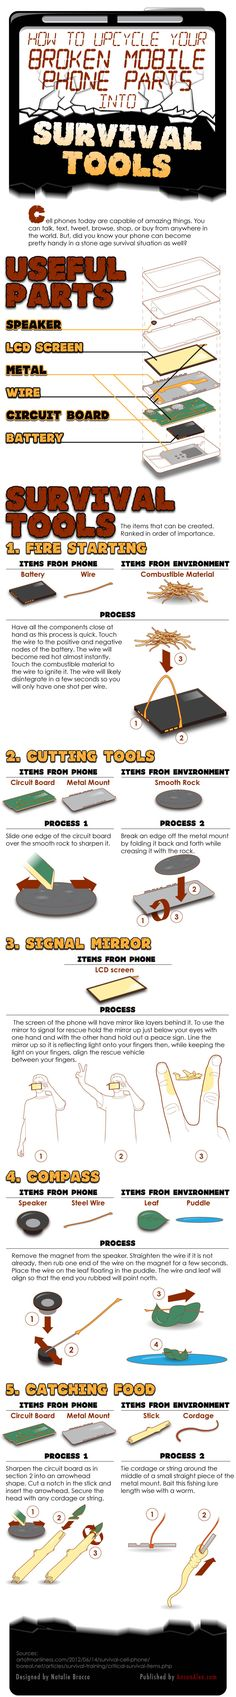 lifehacking-smartphone-survival-tips-infographic